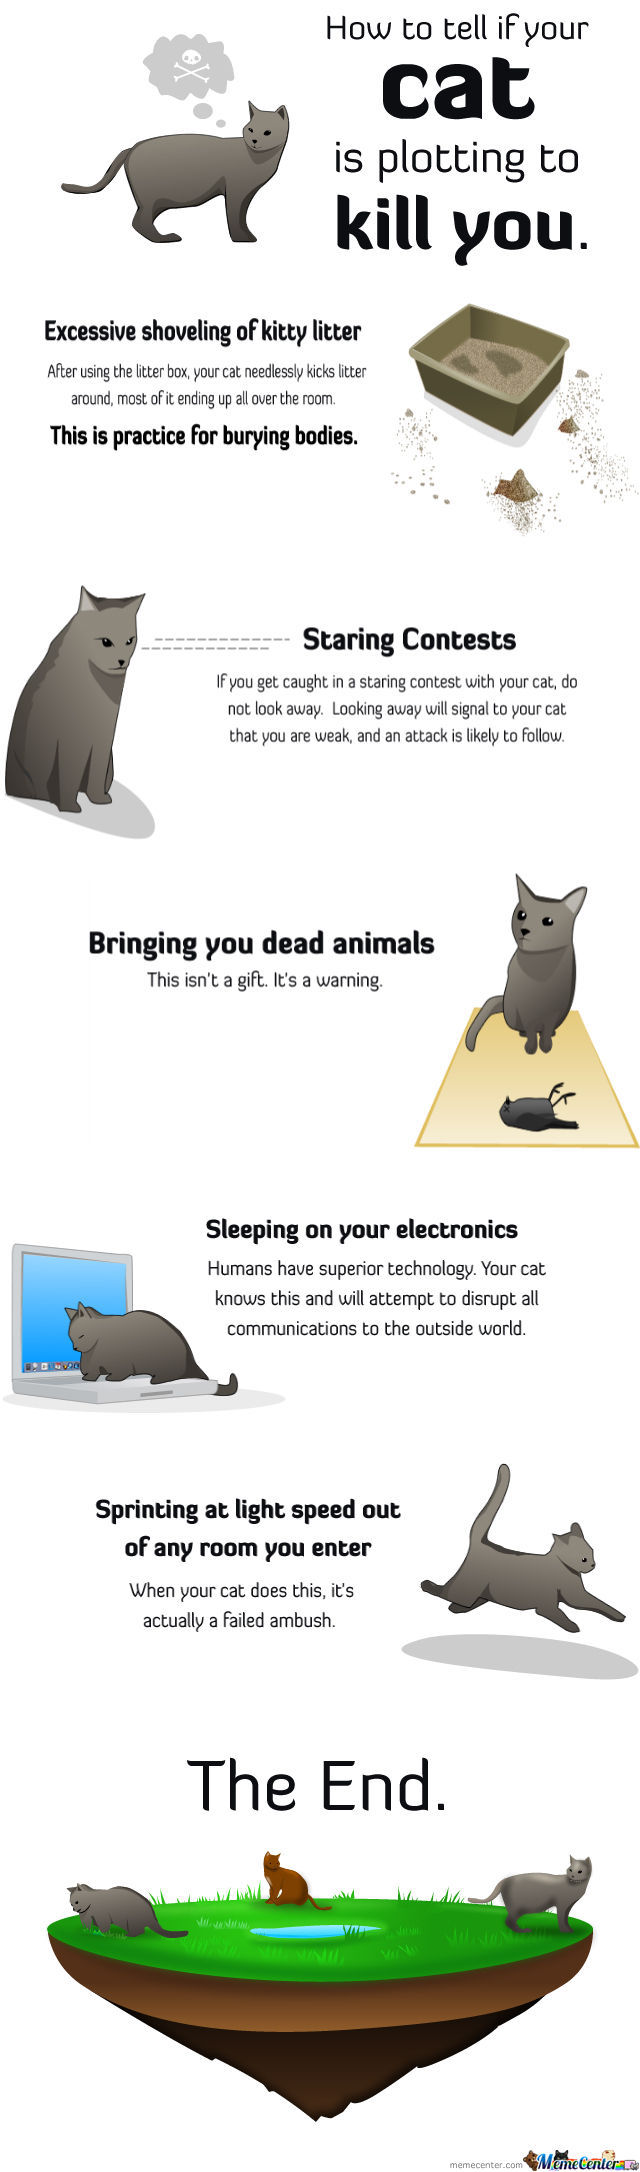 How To Tell If Your Cat Is Planning To Kill You.